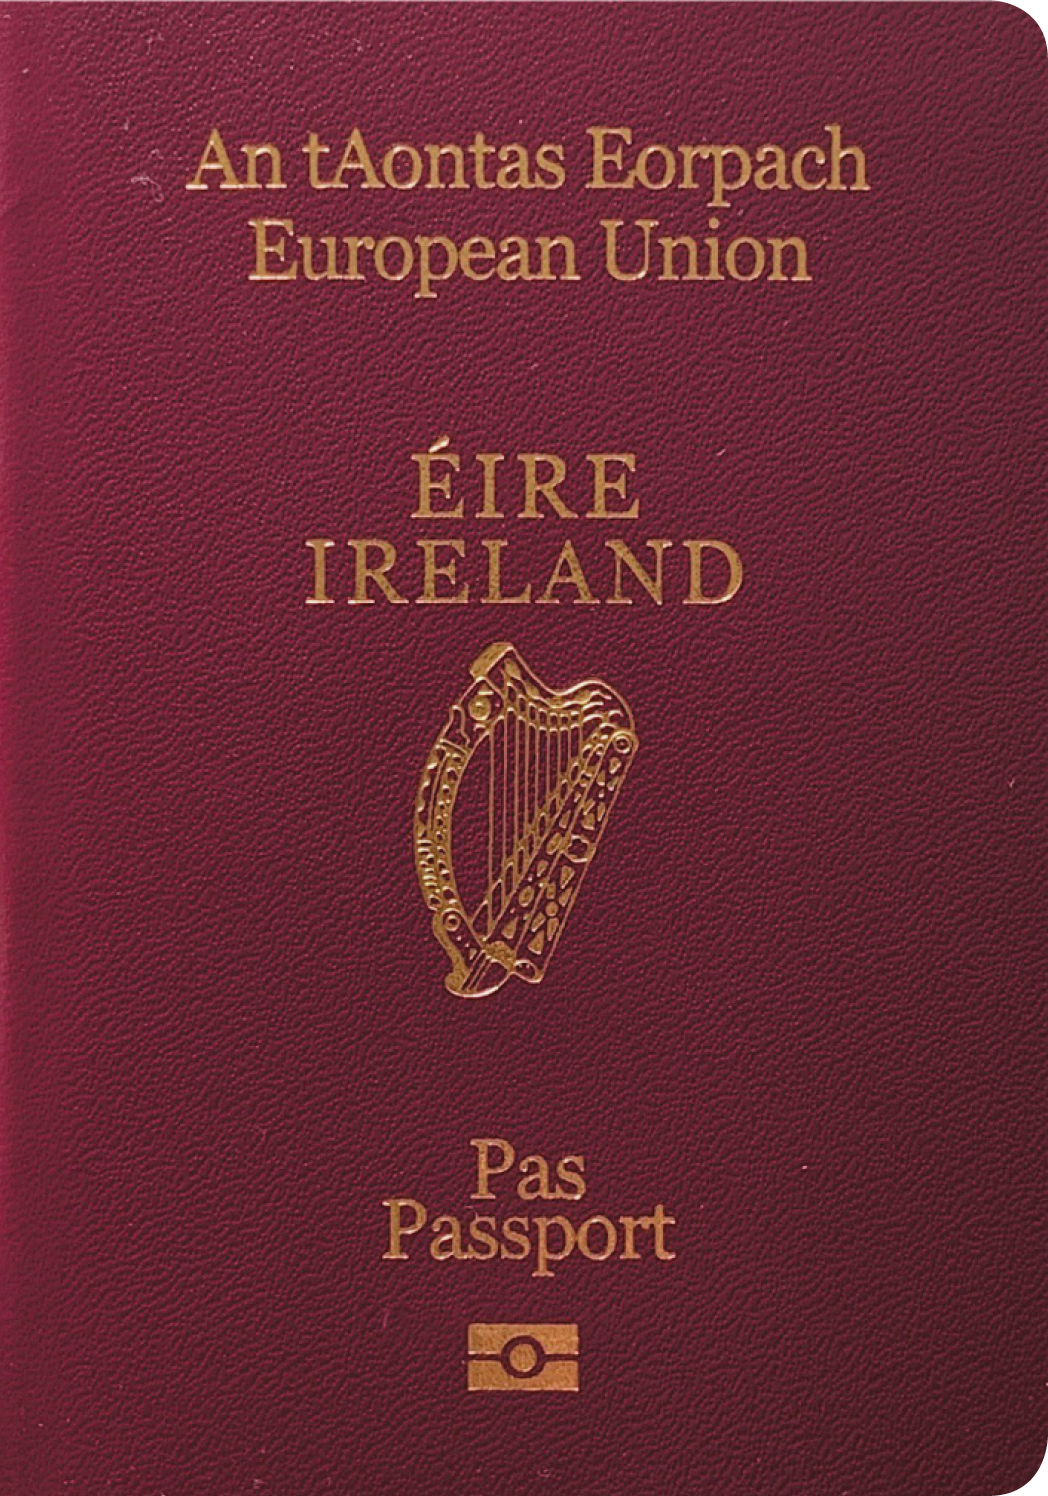 A regular or ordinary ireland passport - Front side